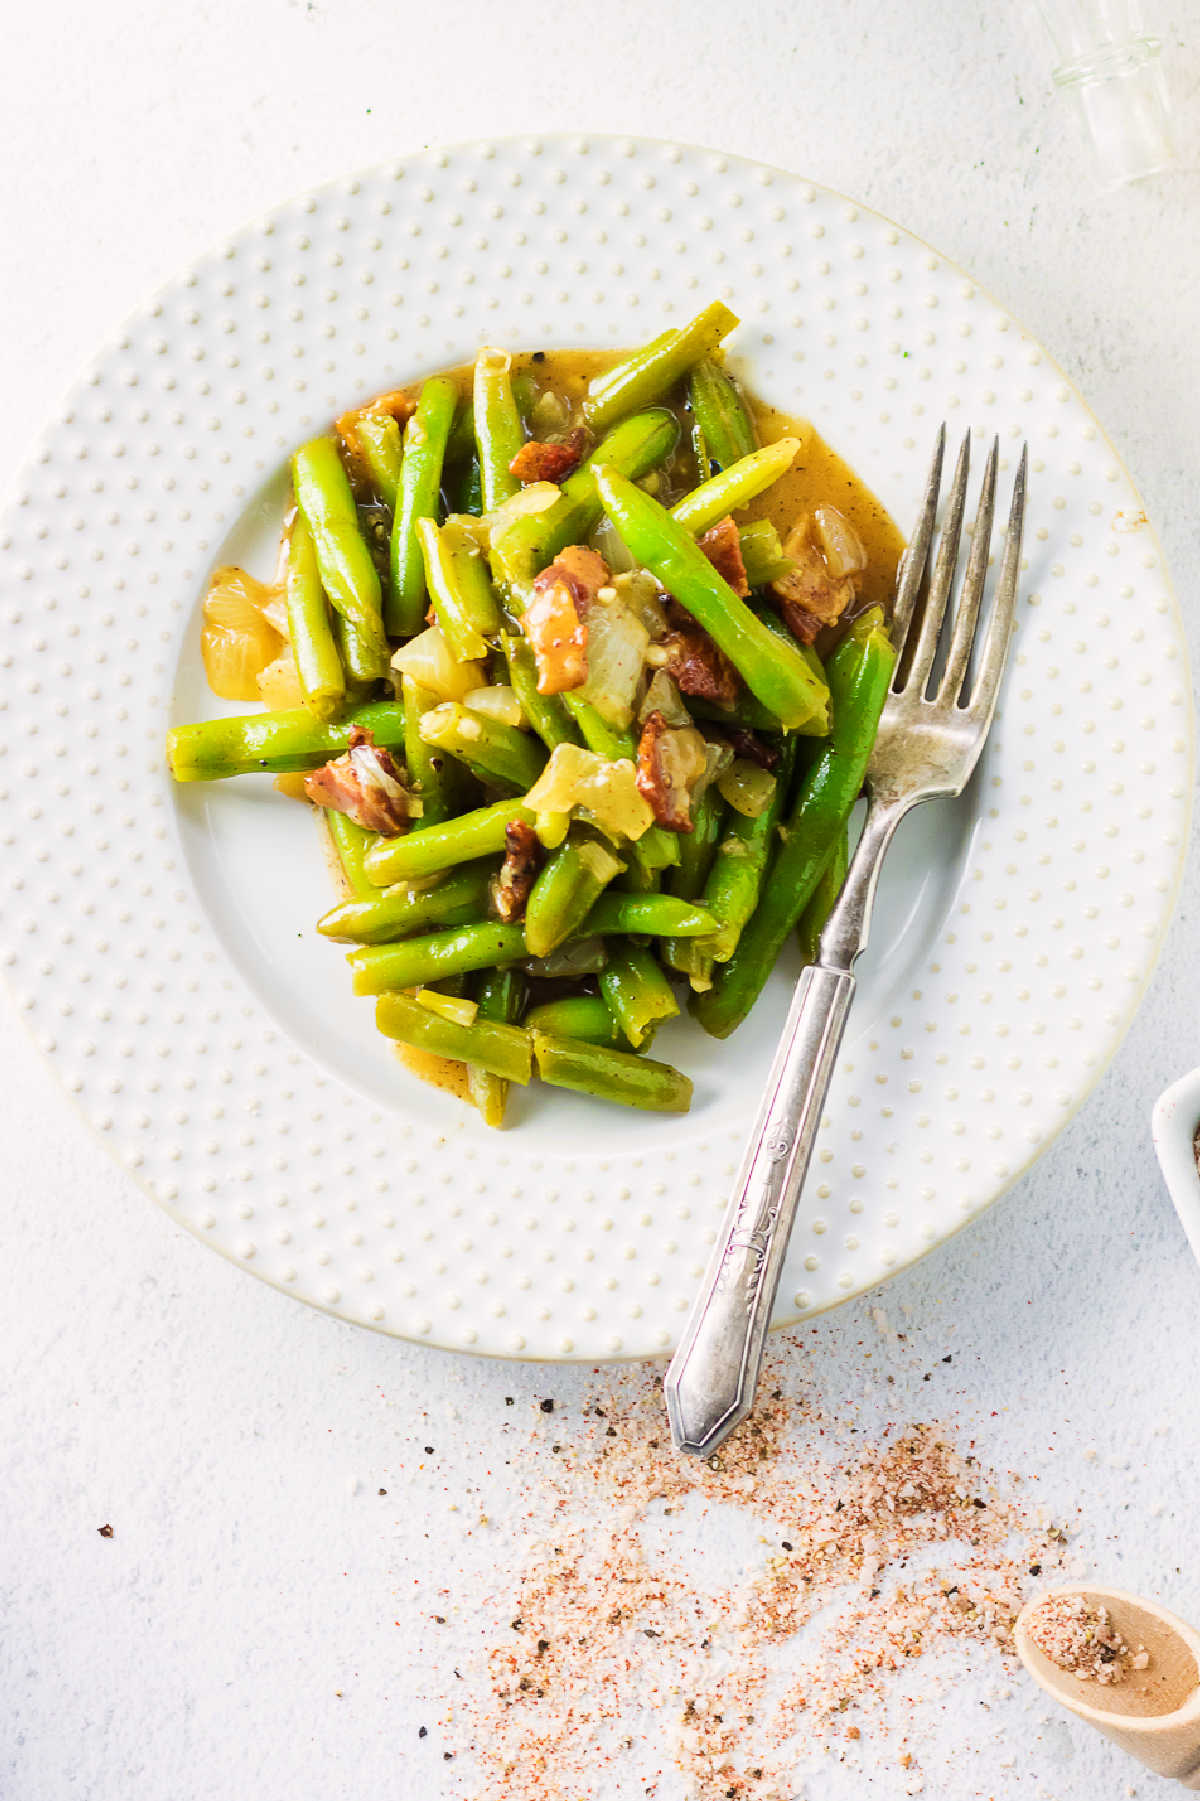 Overhead view of southern green beans on a white plate.